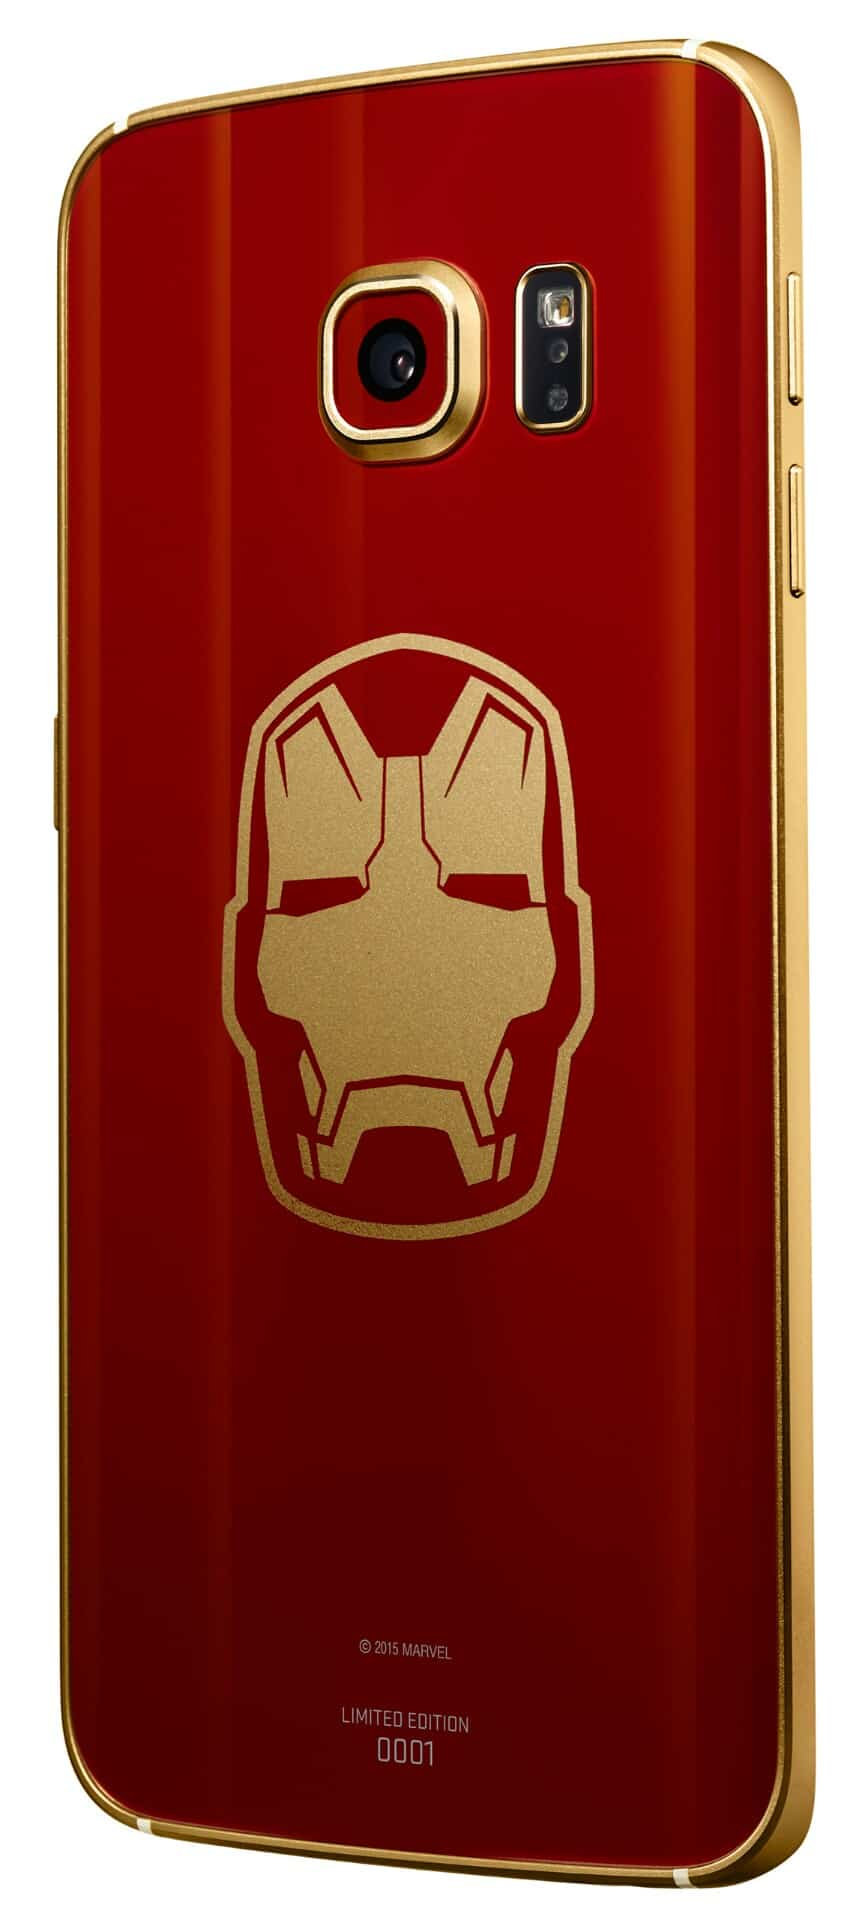 Galaxy S6 edge Iron Man Limited Edition 6 wm